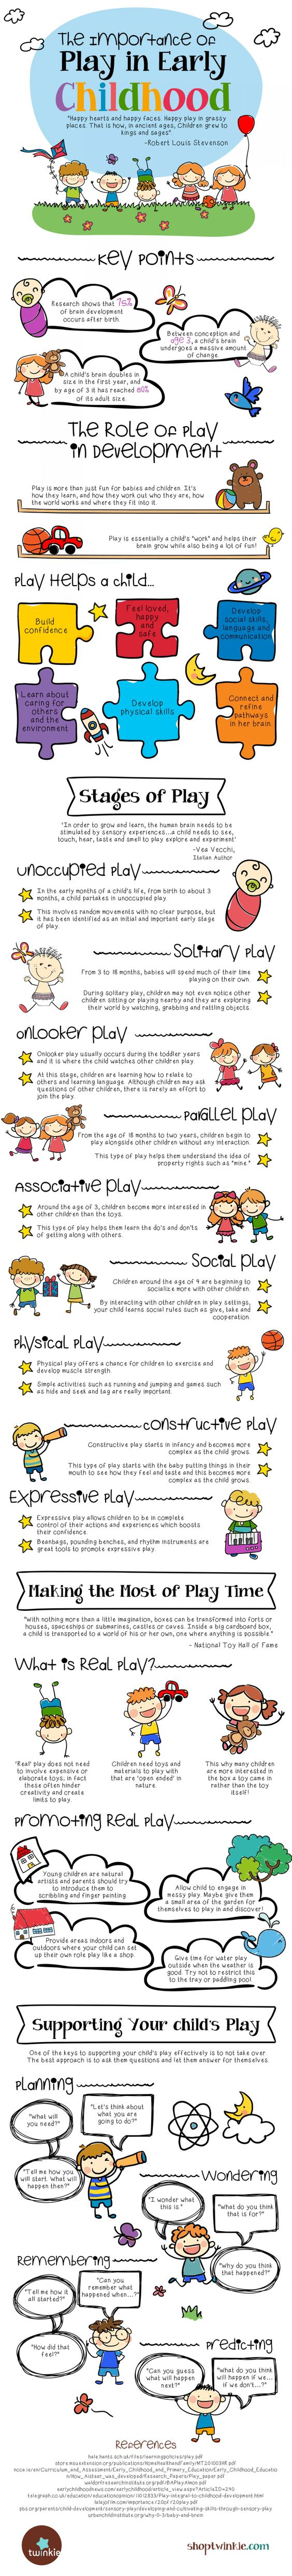 When children play we often just think they're having fun, but research has shown that the benefits of play extend far beyond that in early childhood.